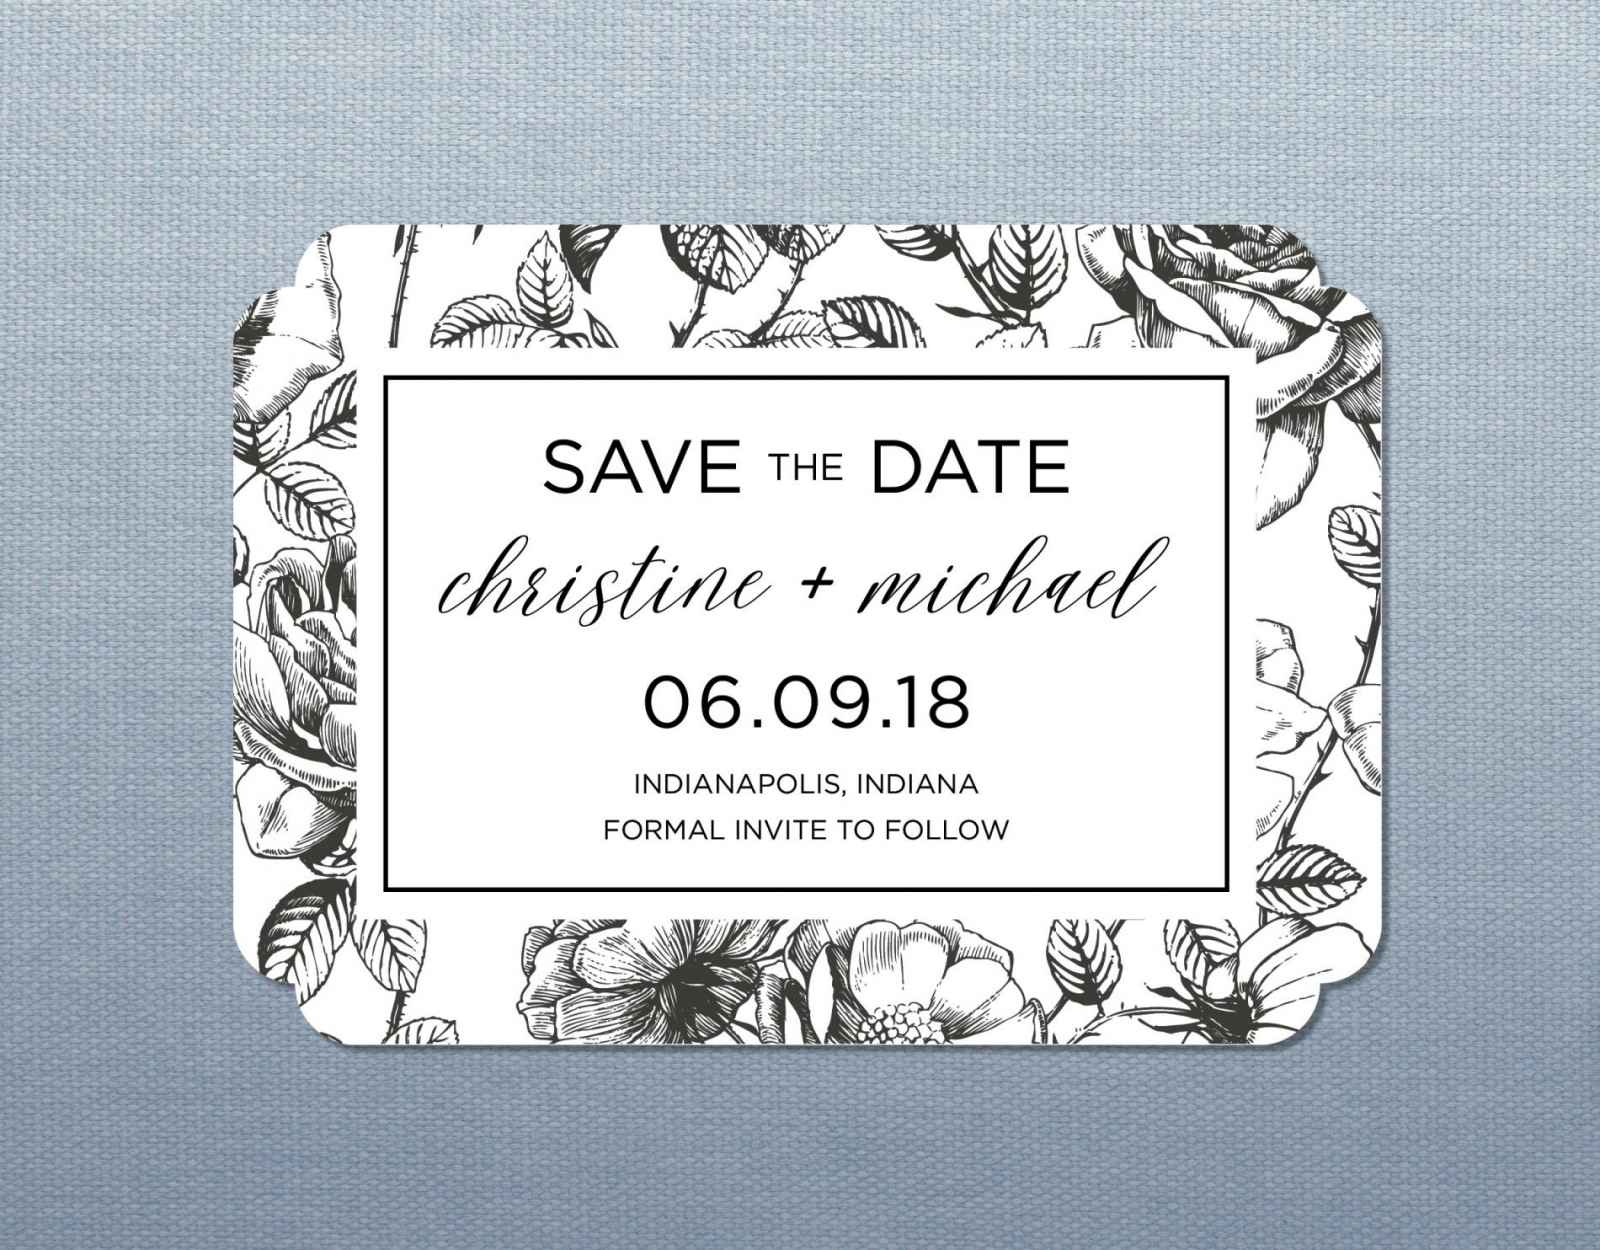 Wedding stationery basics save the dates weddingday magazine also since save the dates are still a somewhat new idea it will help all your guests understand that this is not the formal invitation stopboris Choice Image